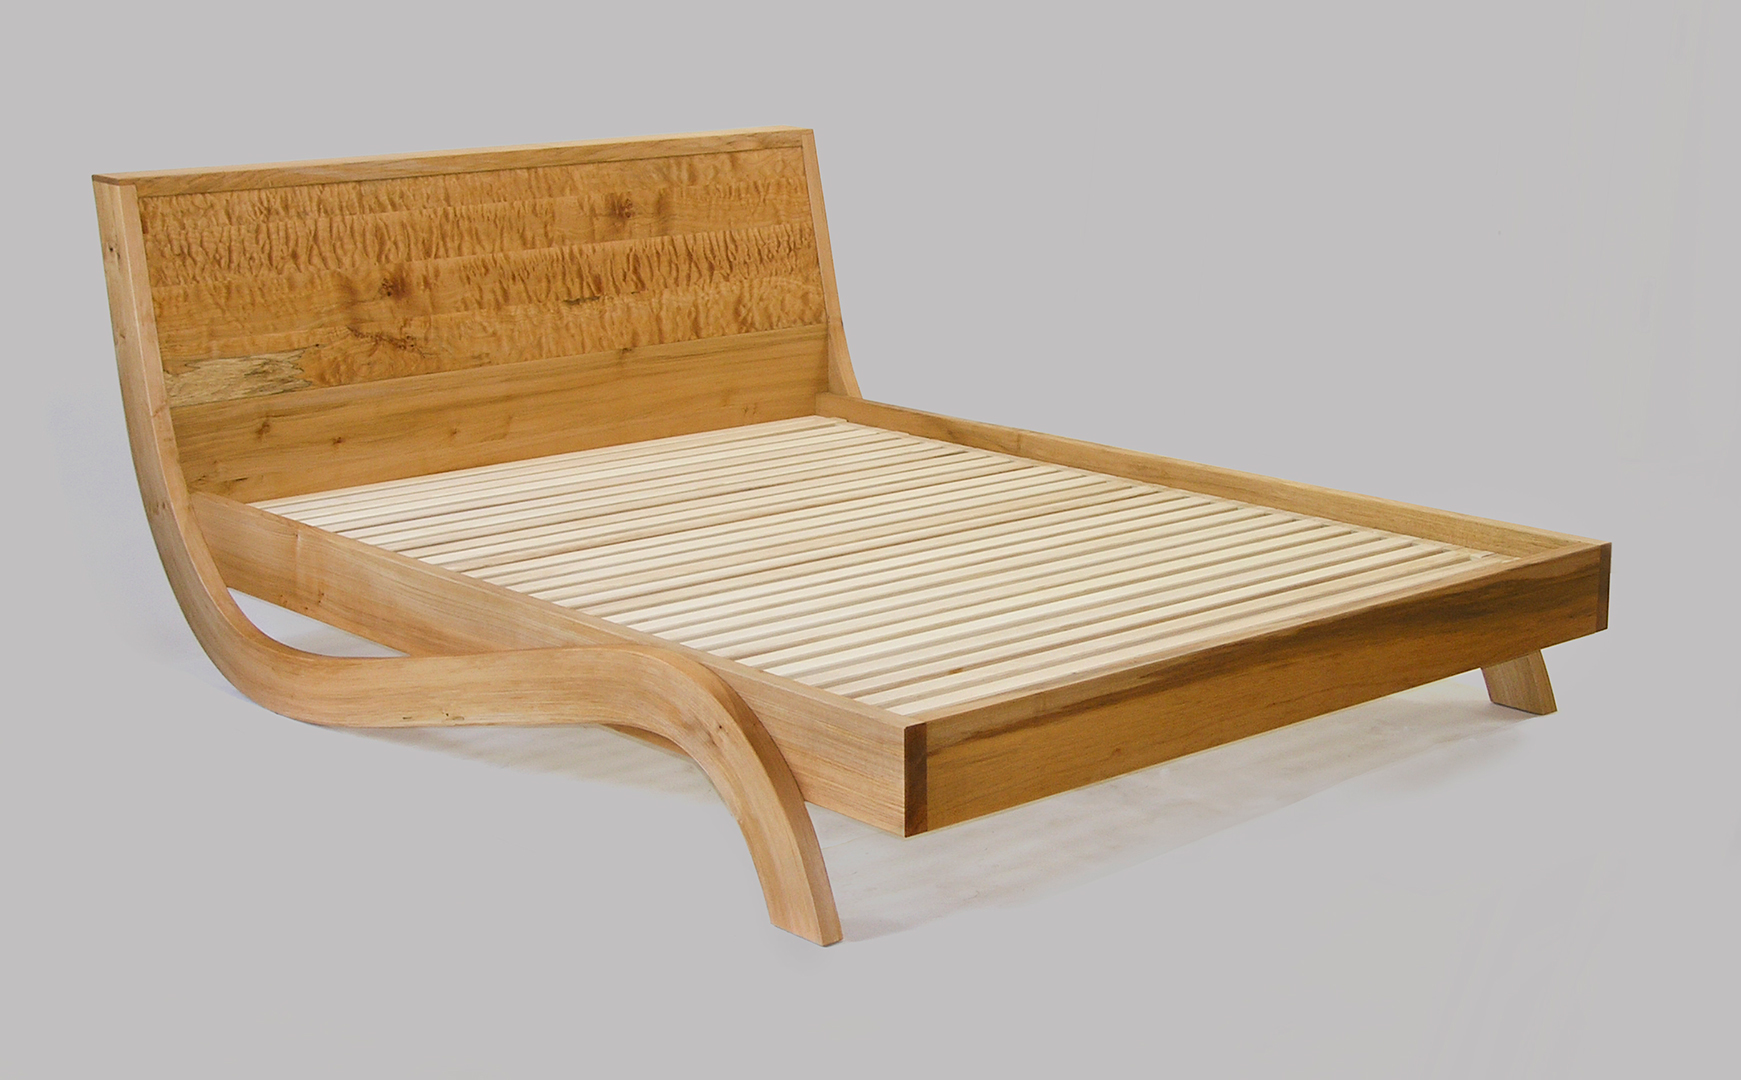 Mapleart Custom Wood Furniture Vancouver Bcgardenia Bed